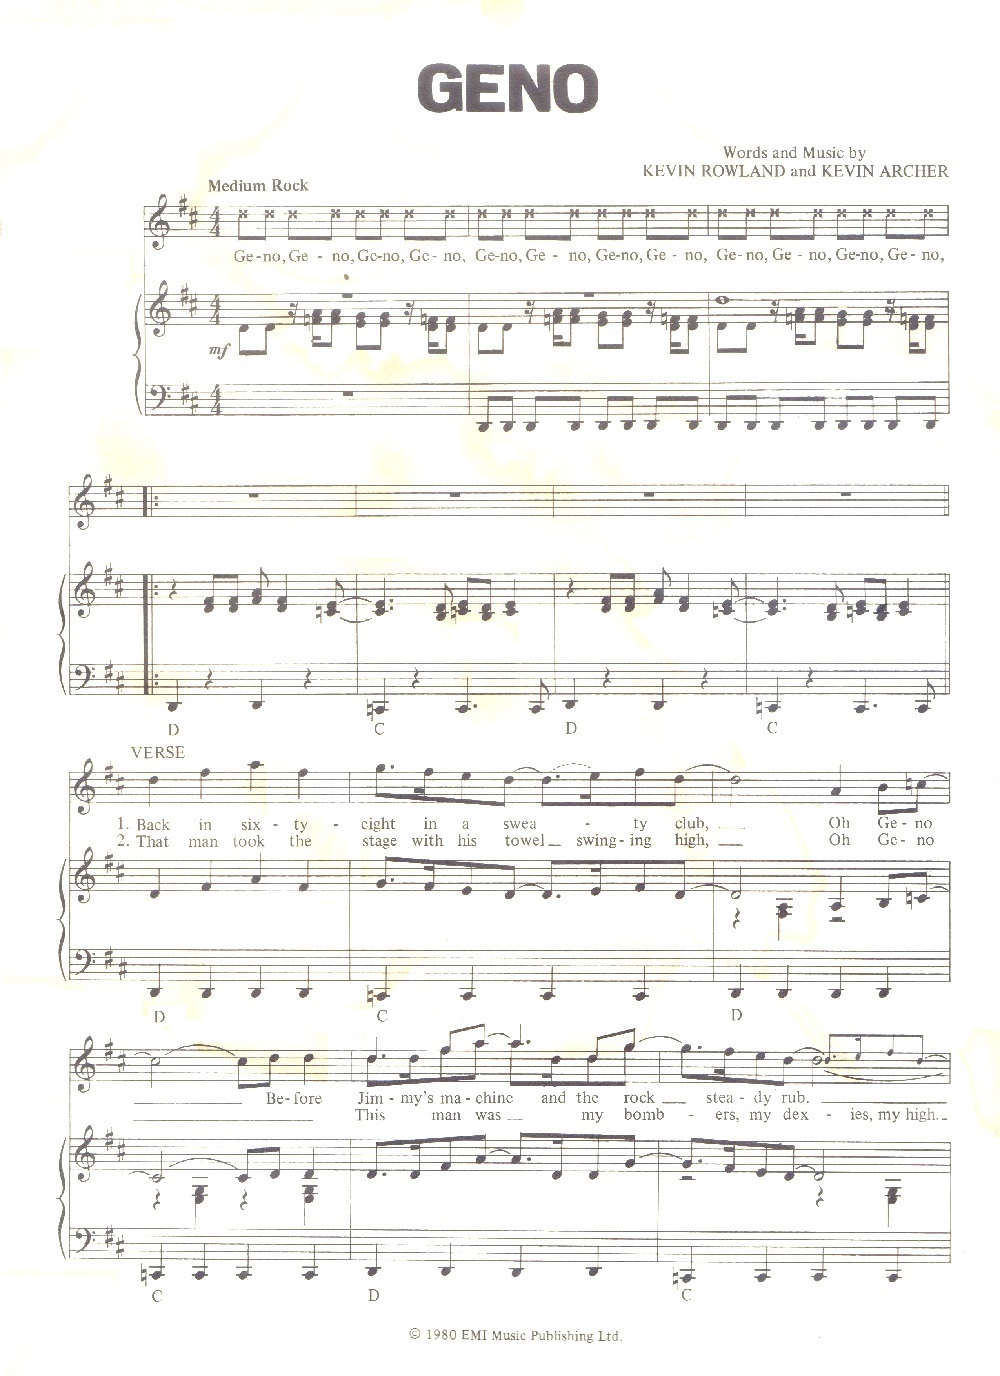 Geno_Sheet_Music_2.jpg